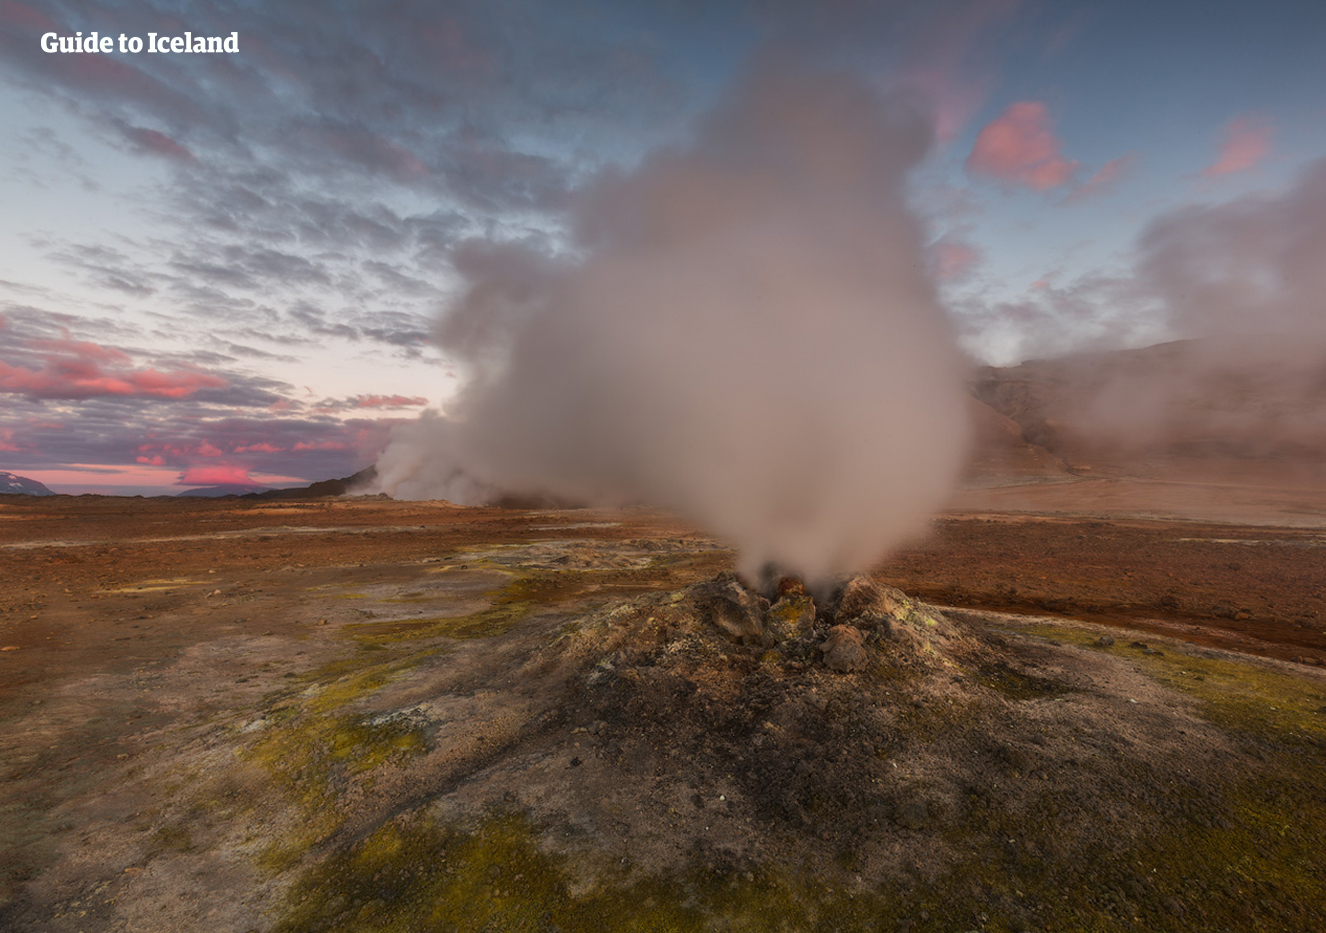 Steam rising from a fumarole vent in a geothermal area near Lake Mývatn in northern Iceland